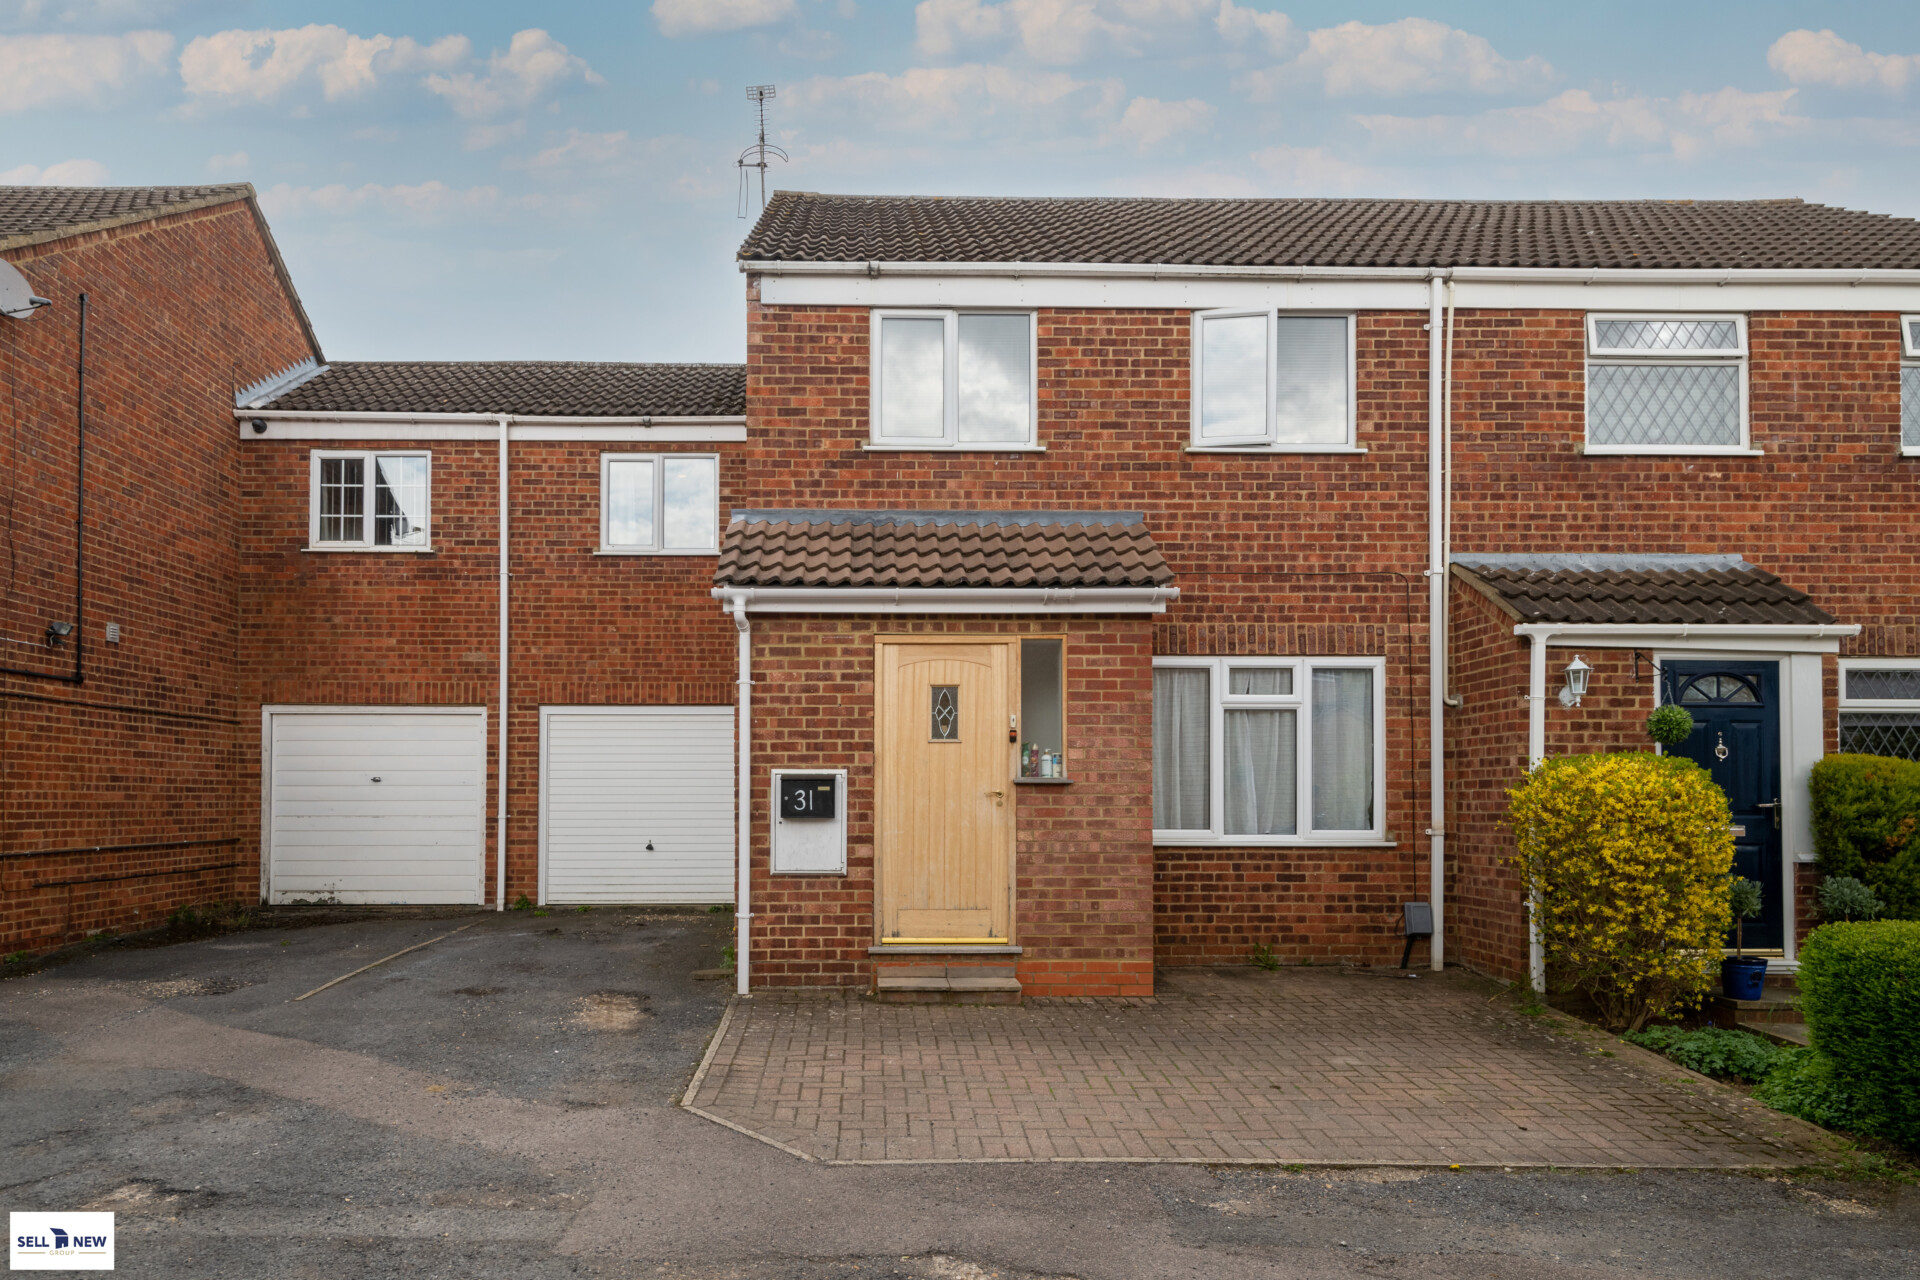 31 Fir tree close Flitwick MK45 1NY – Four double bedroom home within easy reach of the train station